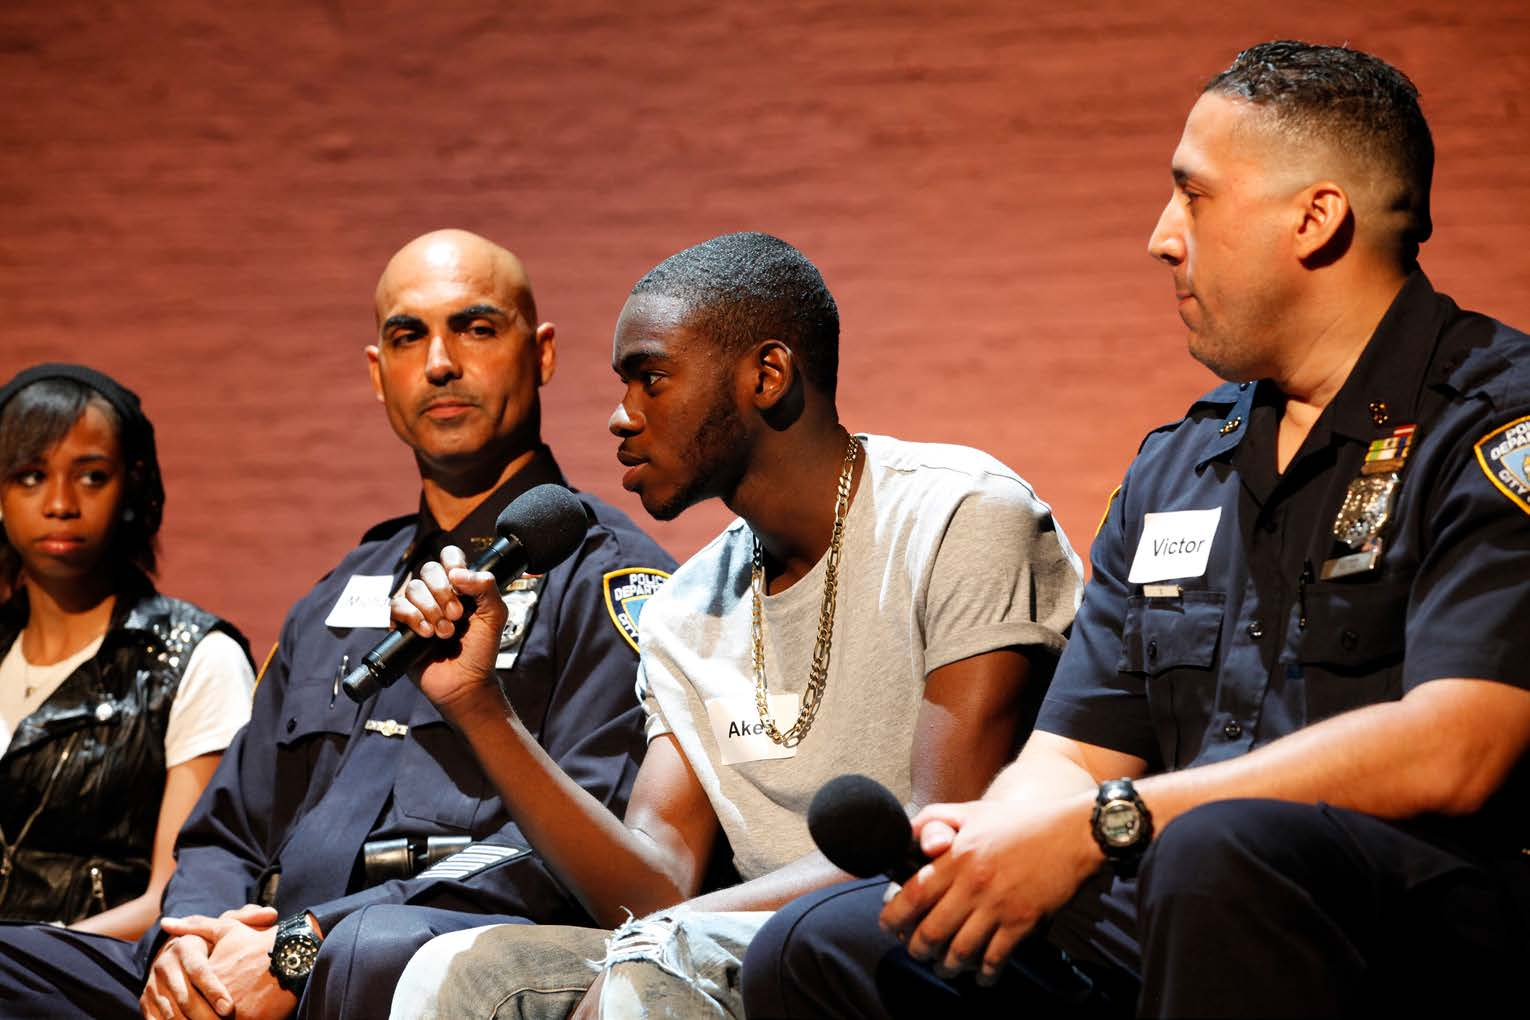 Operation Conversation: Cops & Kids demonstration workshop at the Apollo Theater, August 2014. (From left) Starshima Trent, Officer Michael Murdock, Akeil Davis, and Officer Victor Ramos. (Photo by Kenneth Pietrobono)